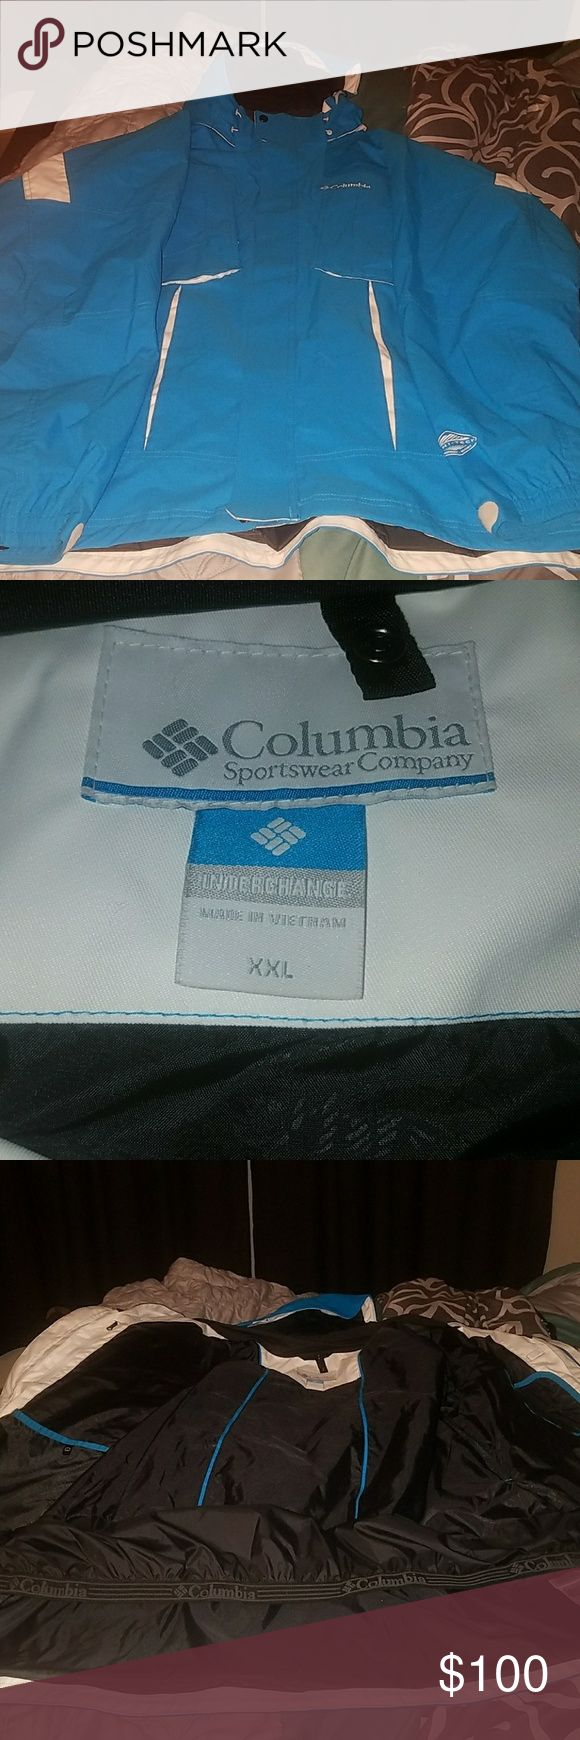 Columbia Men's Jacket In great condition men's ski jacket great for the wimter Columbia Jackets & Coats Ski & Snowboard